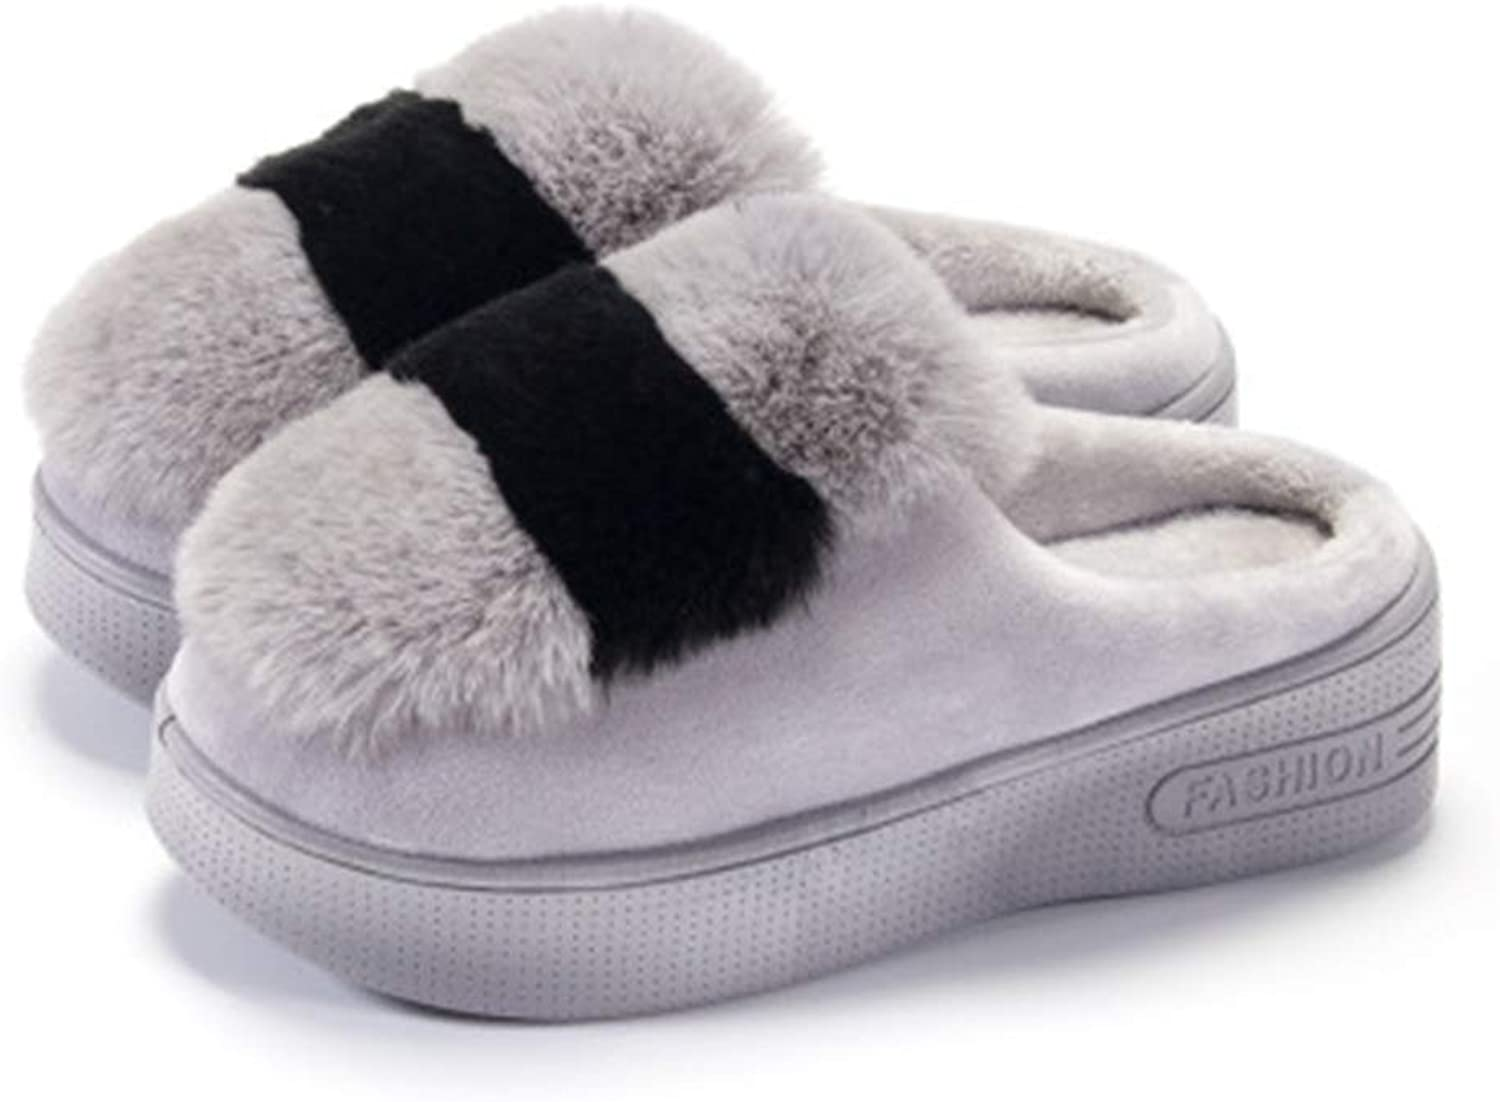 Eleganceoo Womens Slipper, Fluffy House Slippers Clog Soft Indoor Outdoor Winter Slipper